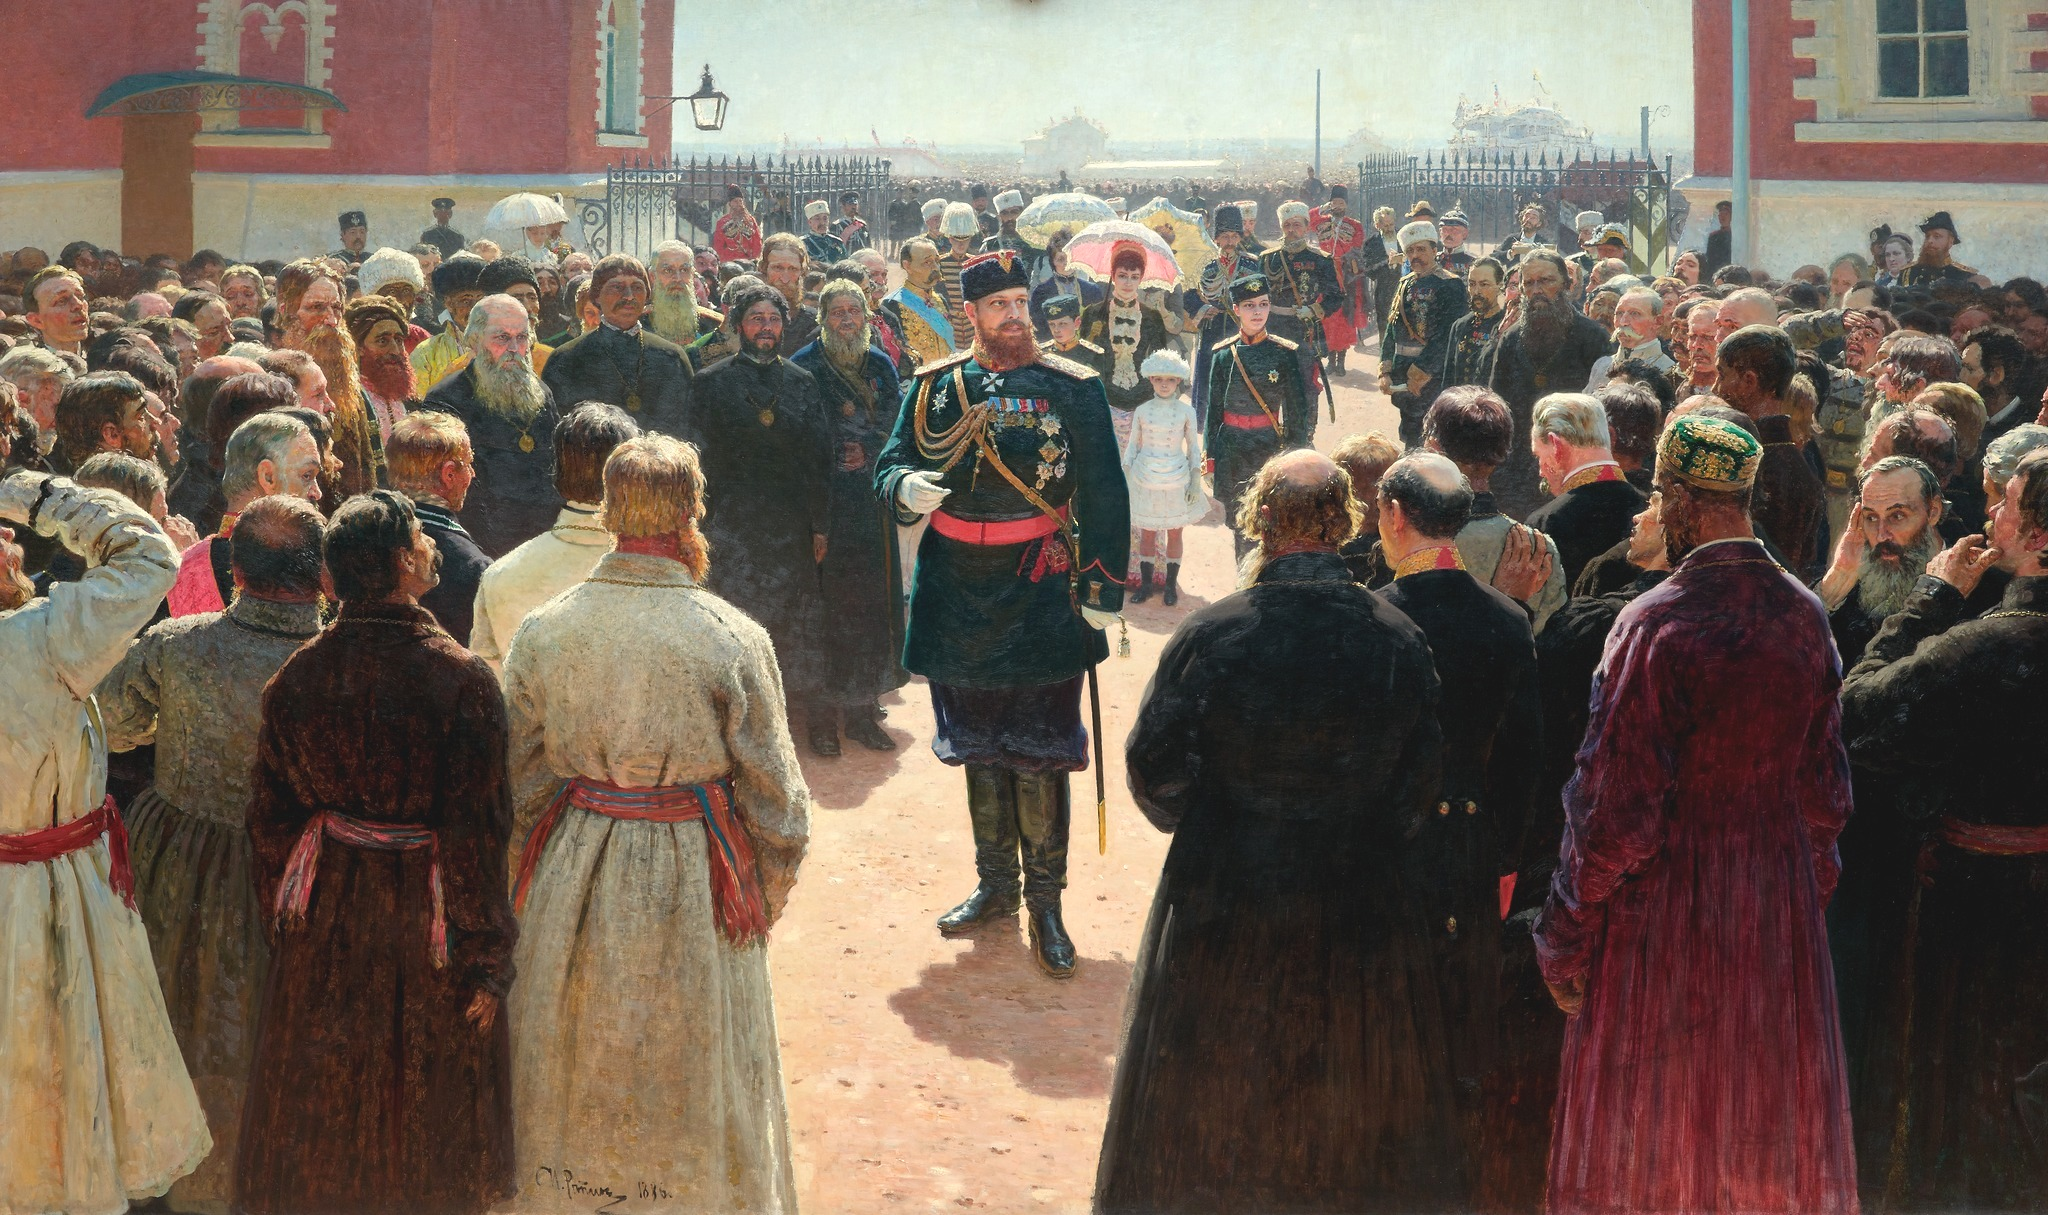 http://upload.wikimedia.org/wikipedia/commons/4/41/Alexander_III_reception_by_Repin.jpg